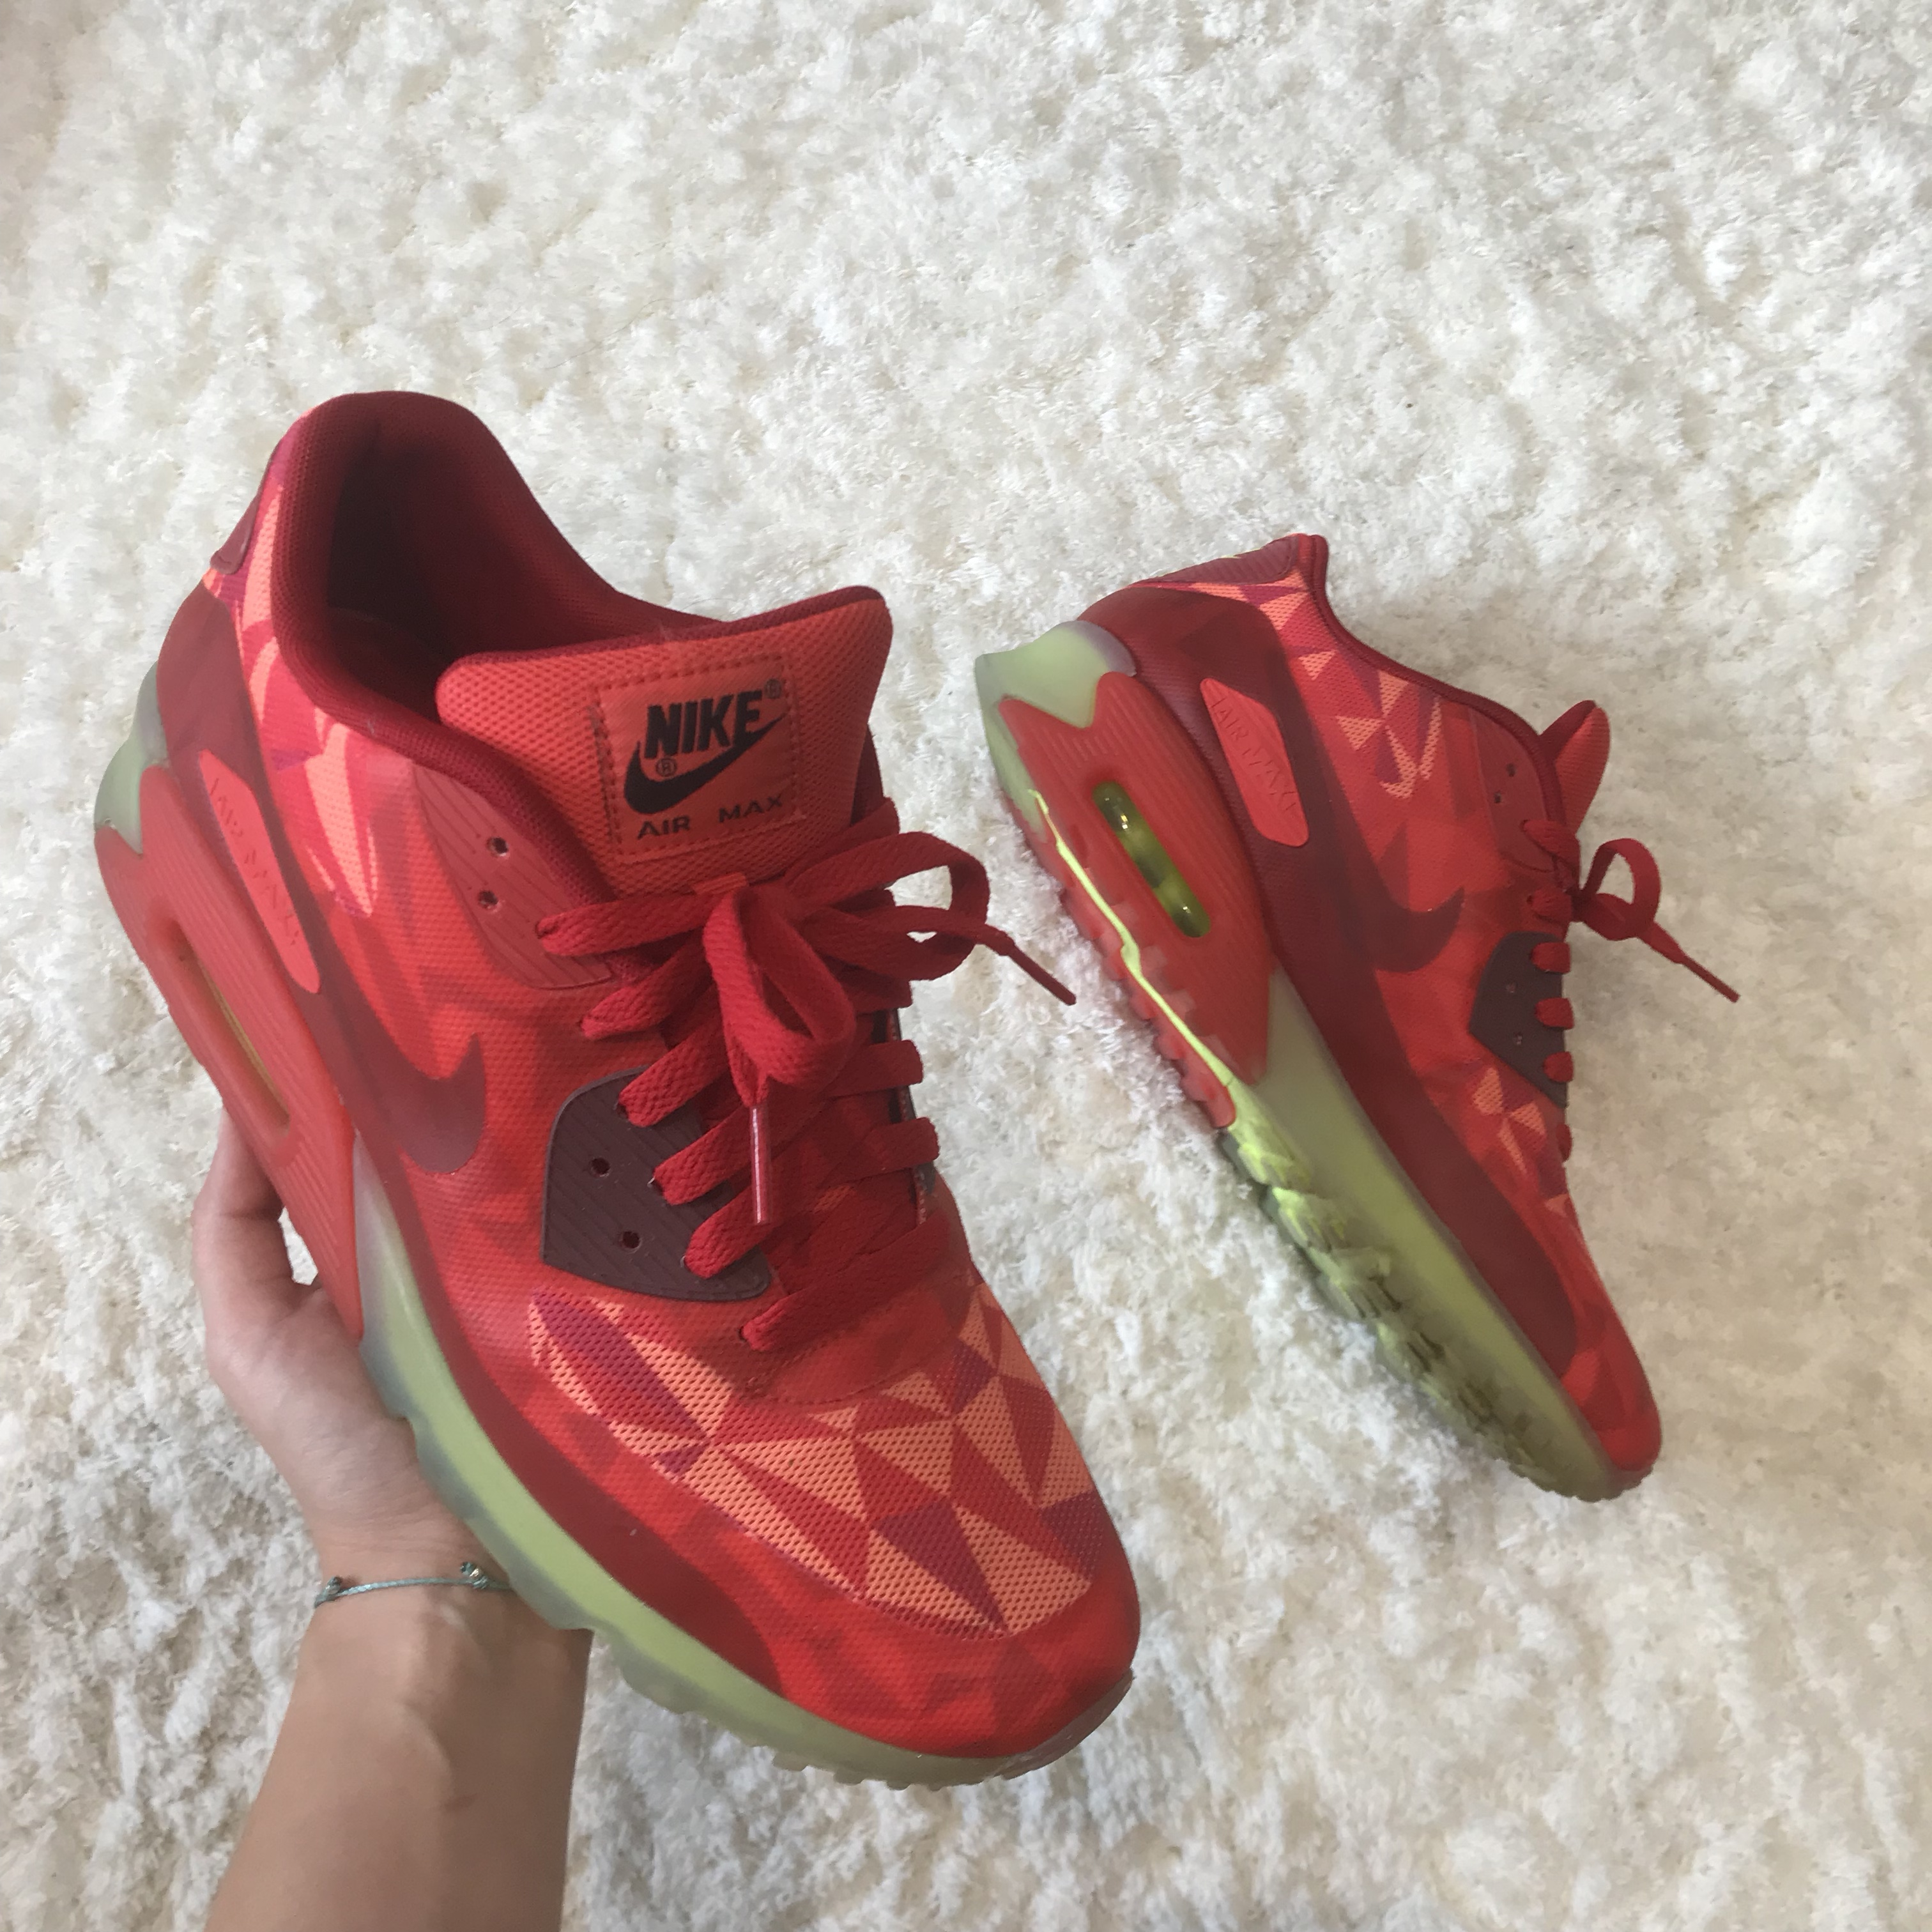 new style ed1cf 7a4b6 Nike Air Max 90 Ice Pack - Gym Red / University... - Depop